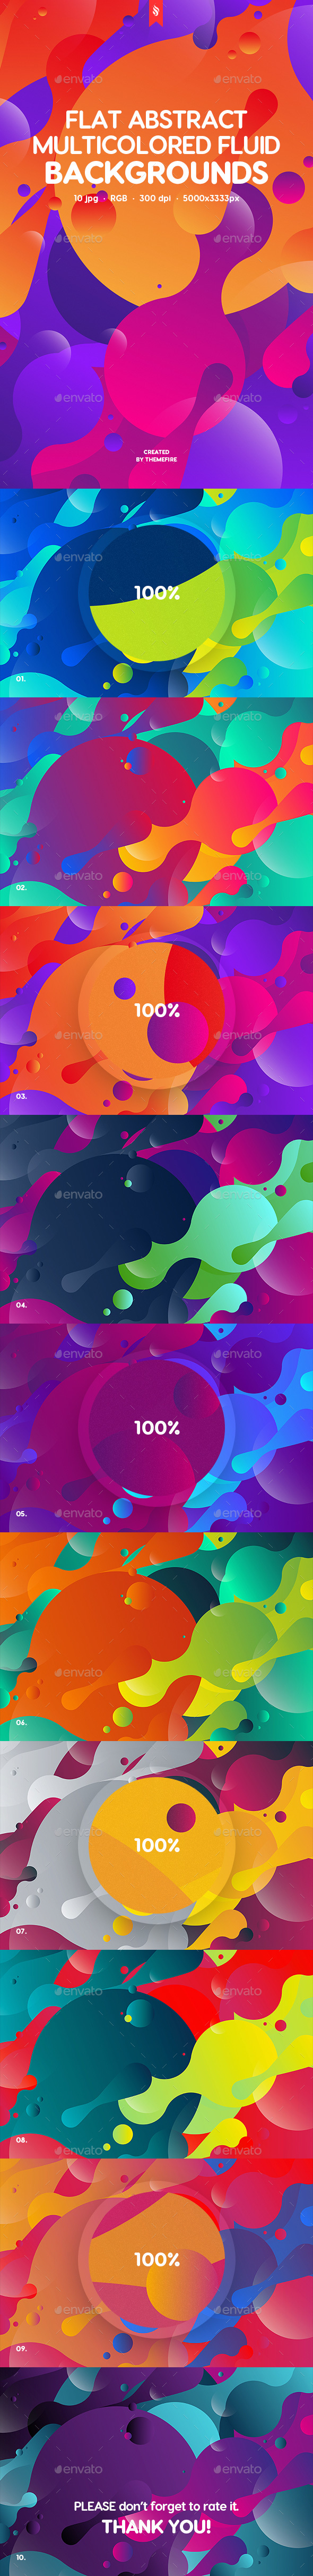 GraphicRiver Abstract Flat Multicolored Fluid Backgrounds 20386685